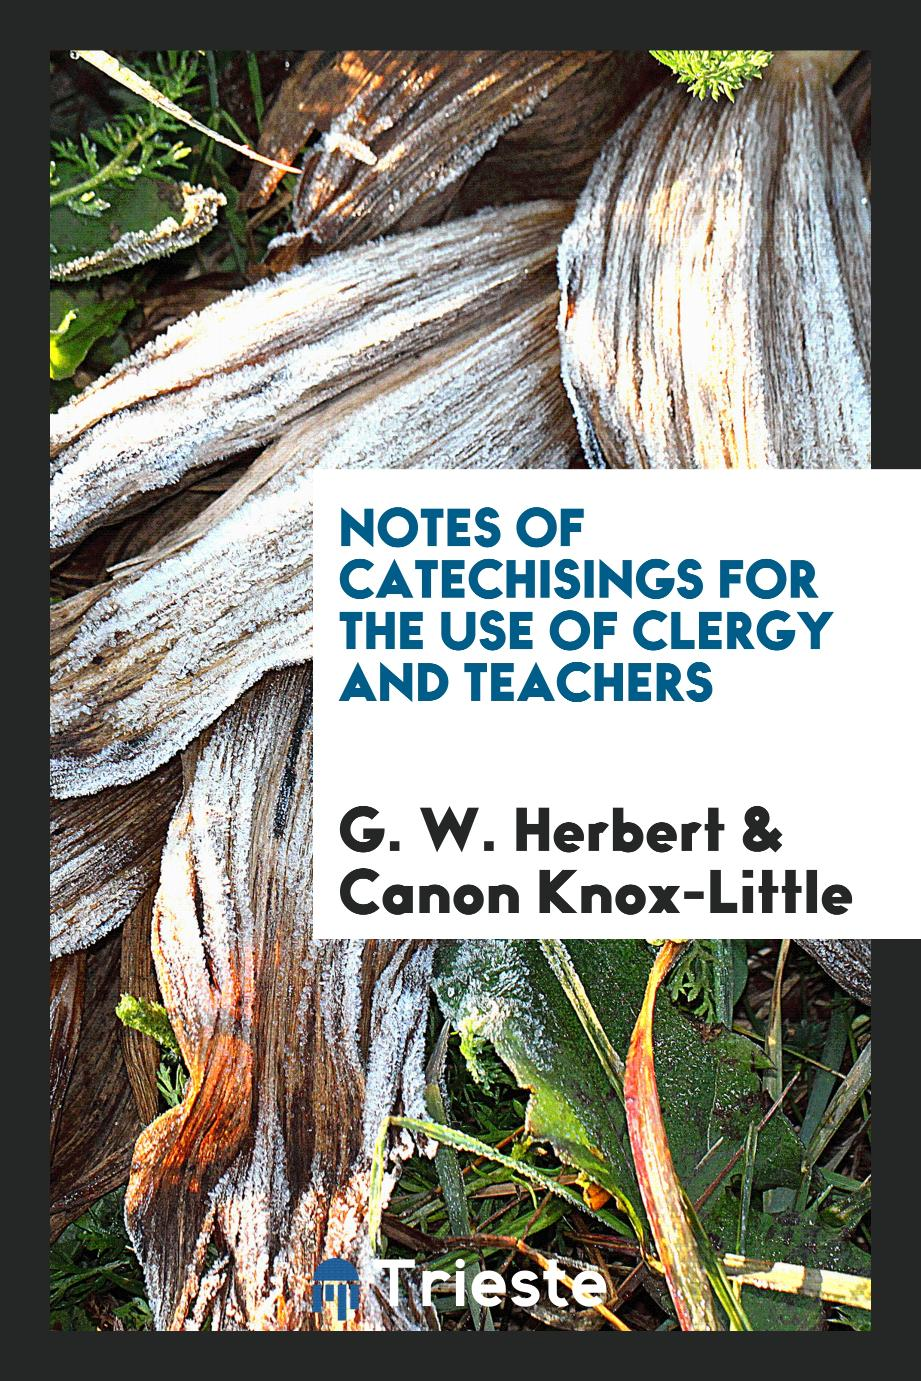 Notes of Catechisings for the Use of Clergy and Teachers